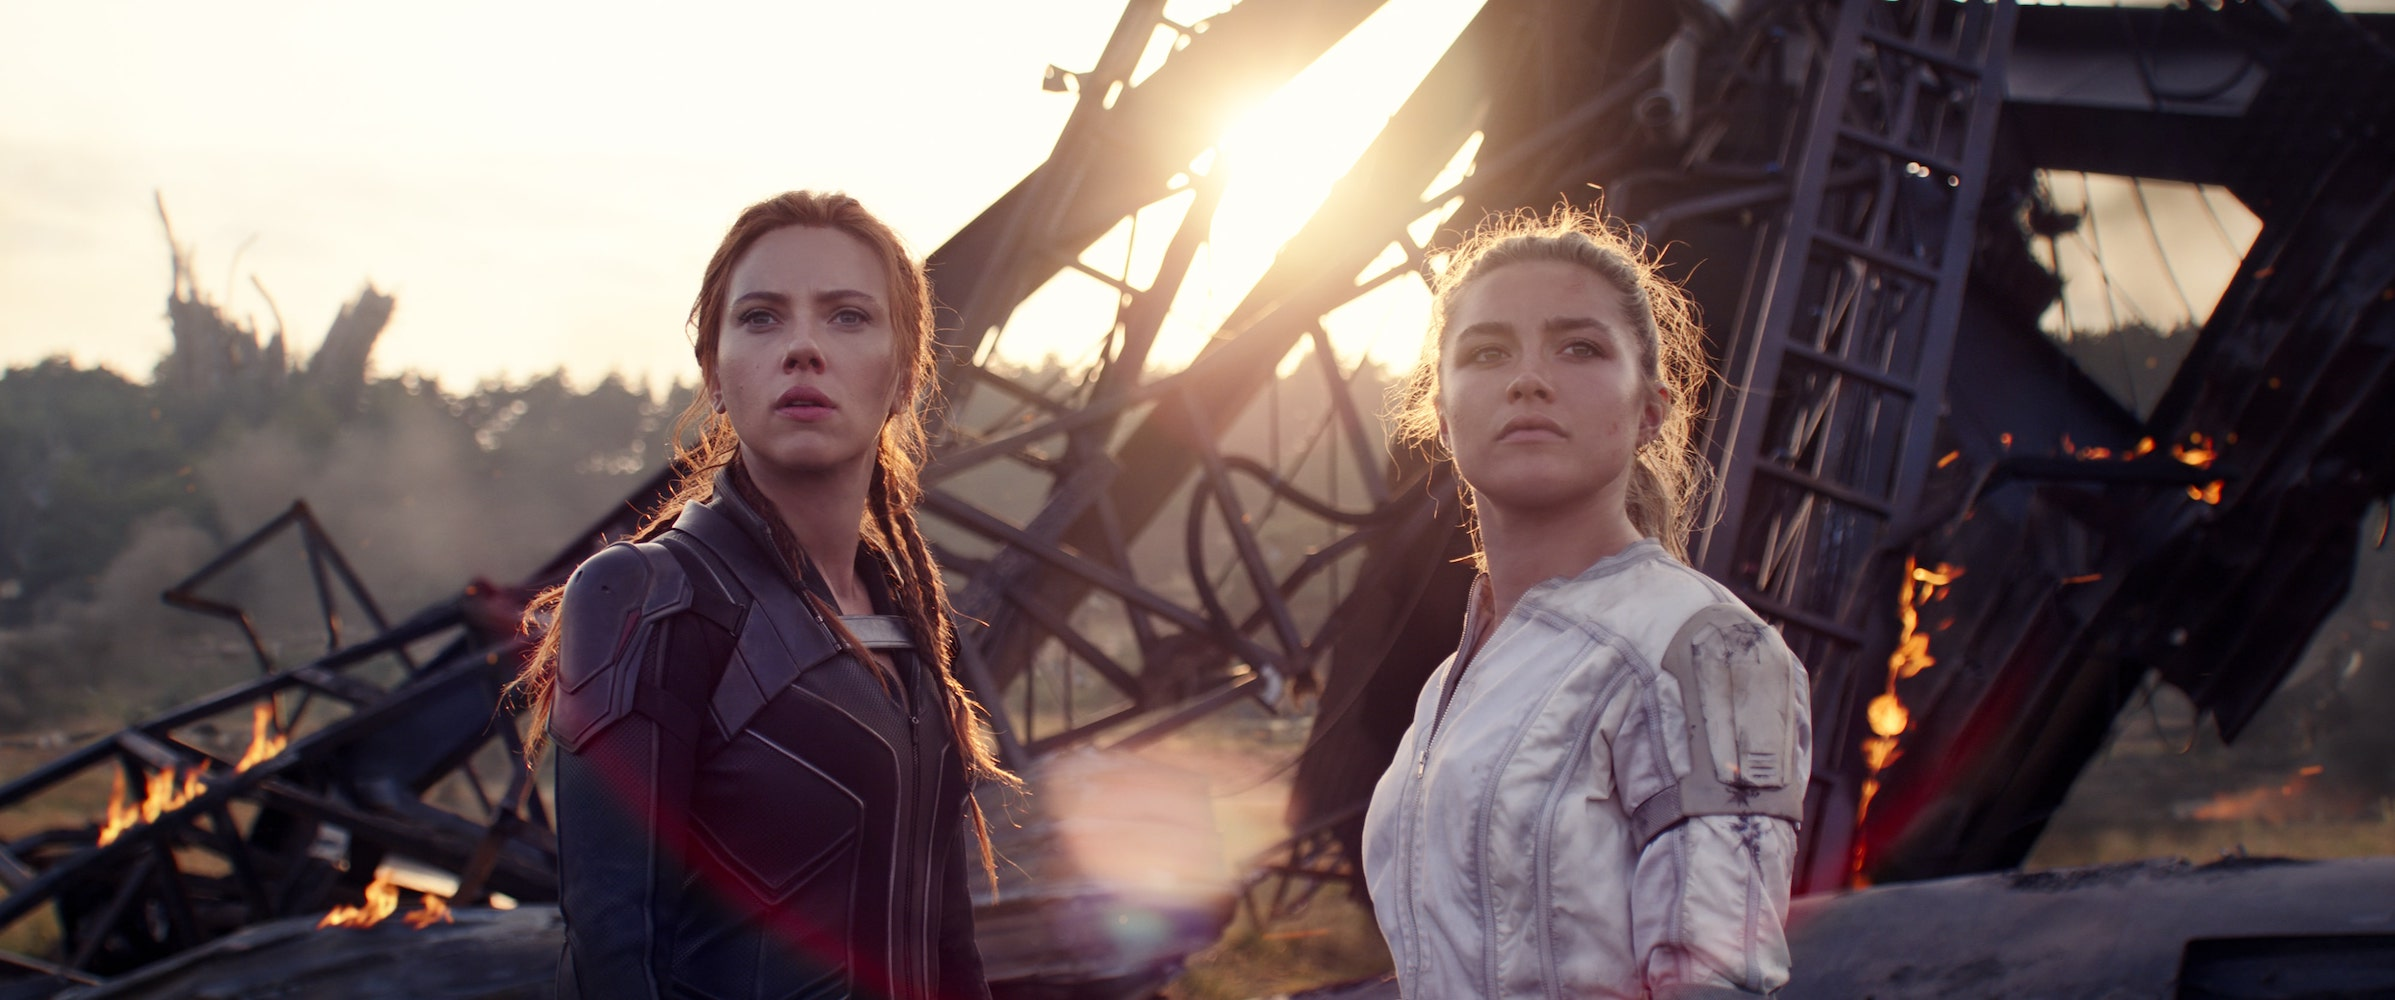 (L-R): Black Widow/Natasha Romanoff (Scarlett Johansson) and Yelena (Florence Pugh) in©Marvel Studios' BLACK WIDOW, in theaters and on Disney+ with Premier Access. Photo courtesy of ©Marvel Studios. ©Marvel Studios 2021. All Rights Reserved.